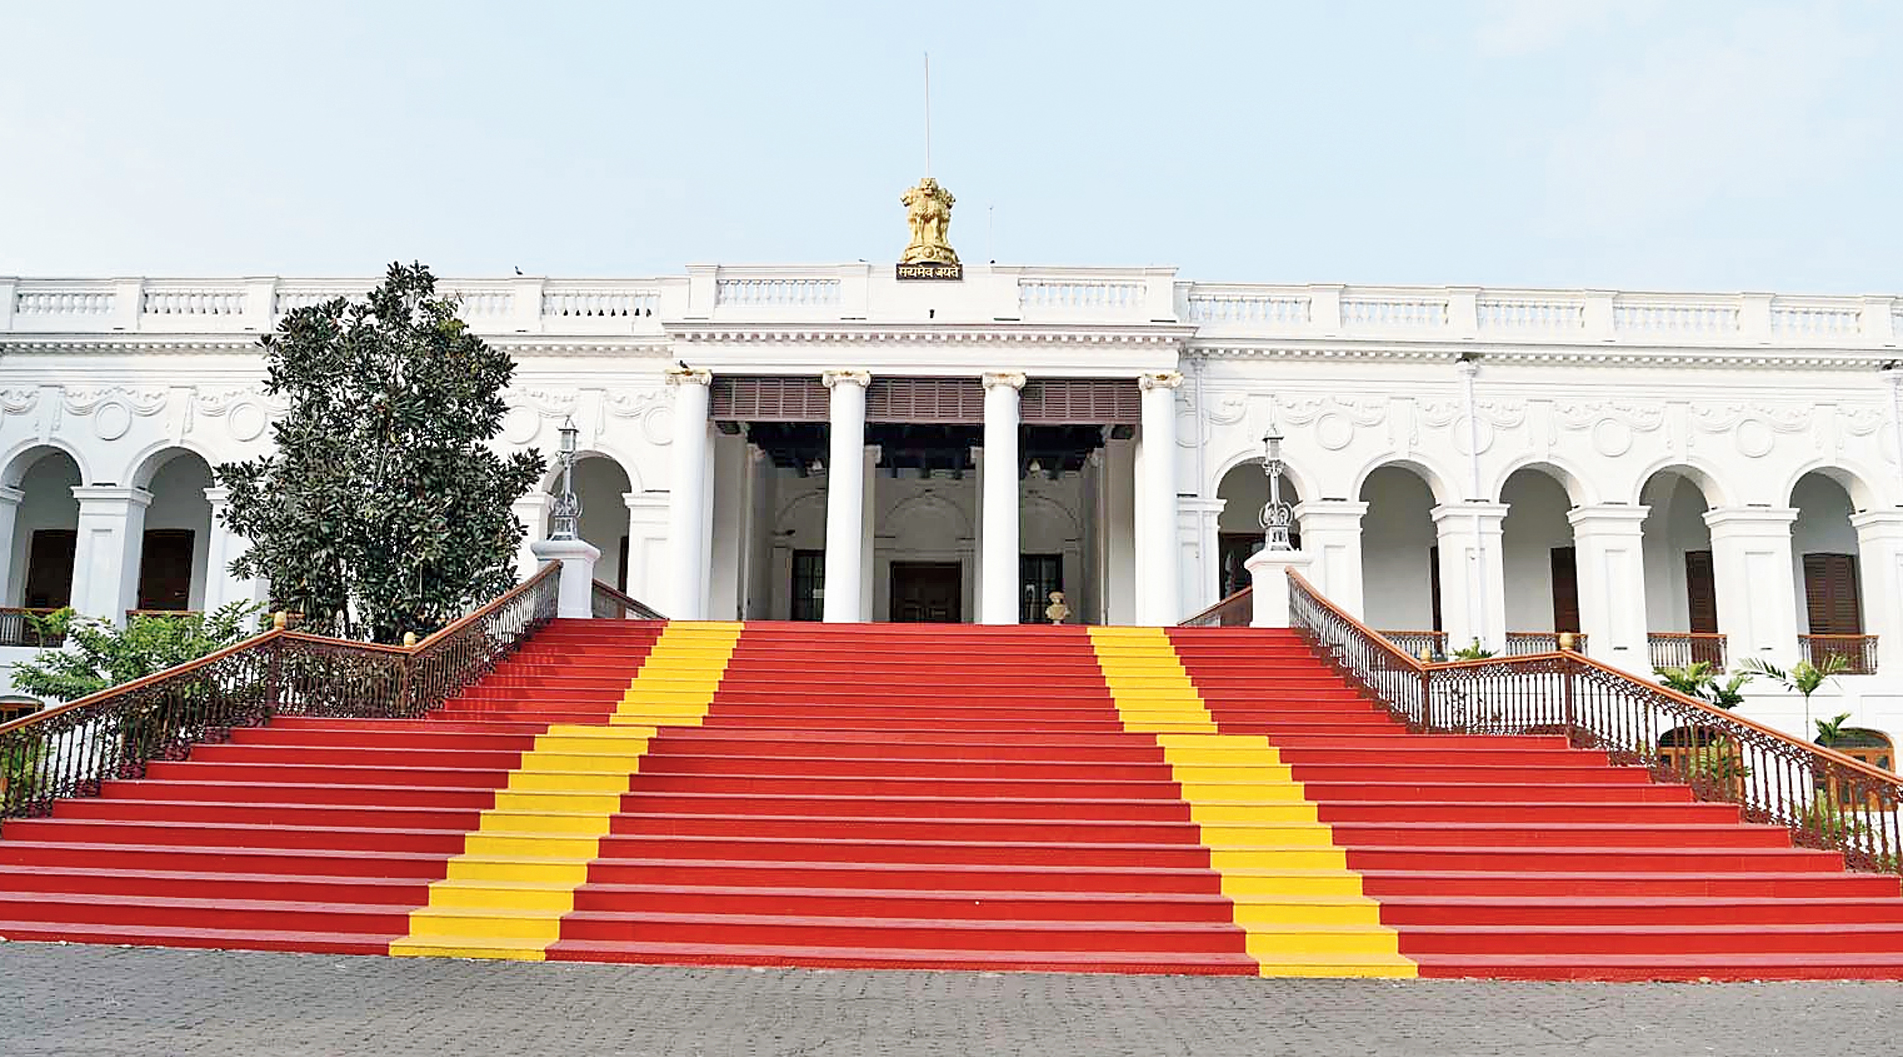 The staircase on the southern side of National Library's Belvedere that has been covered with a material painted red and yellow.